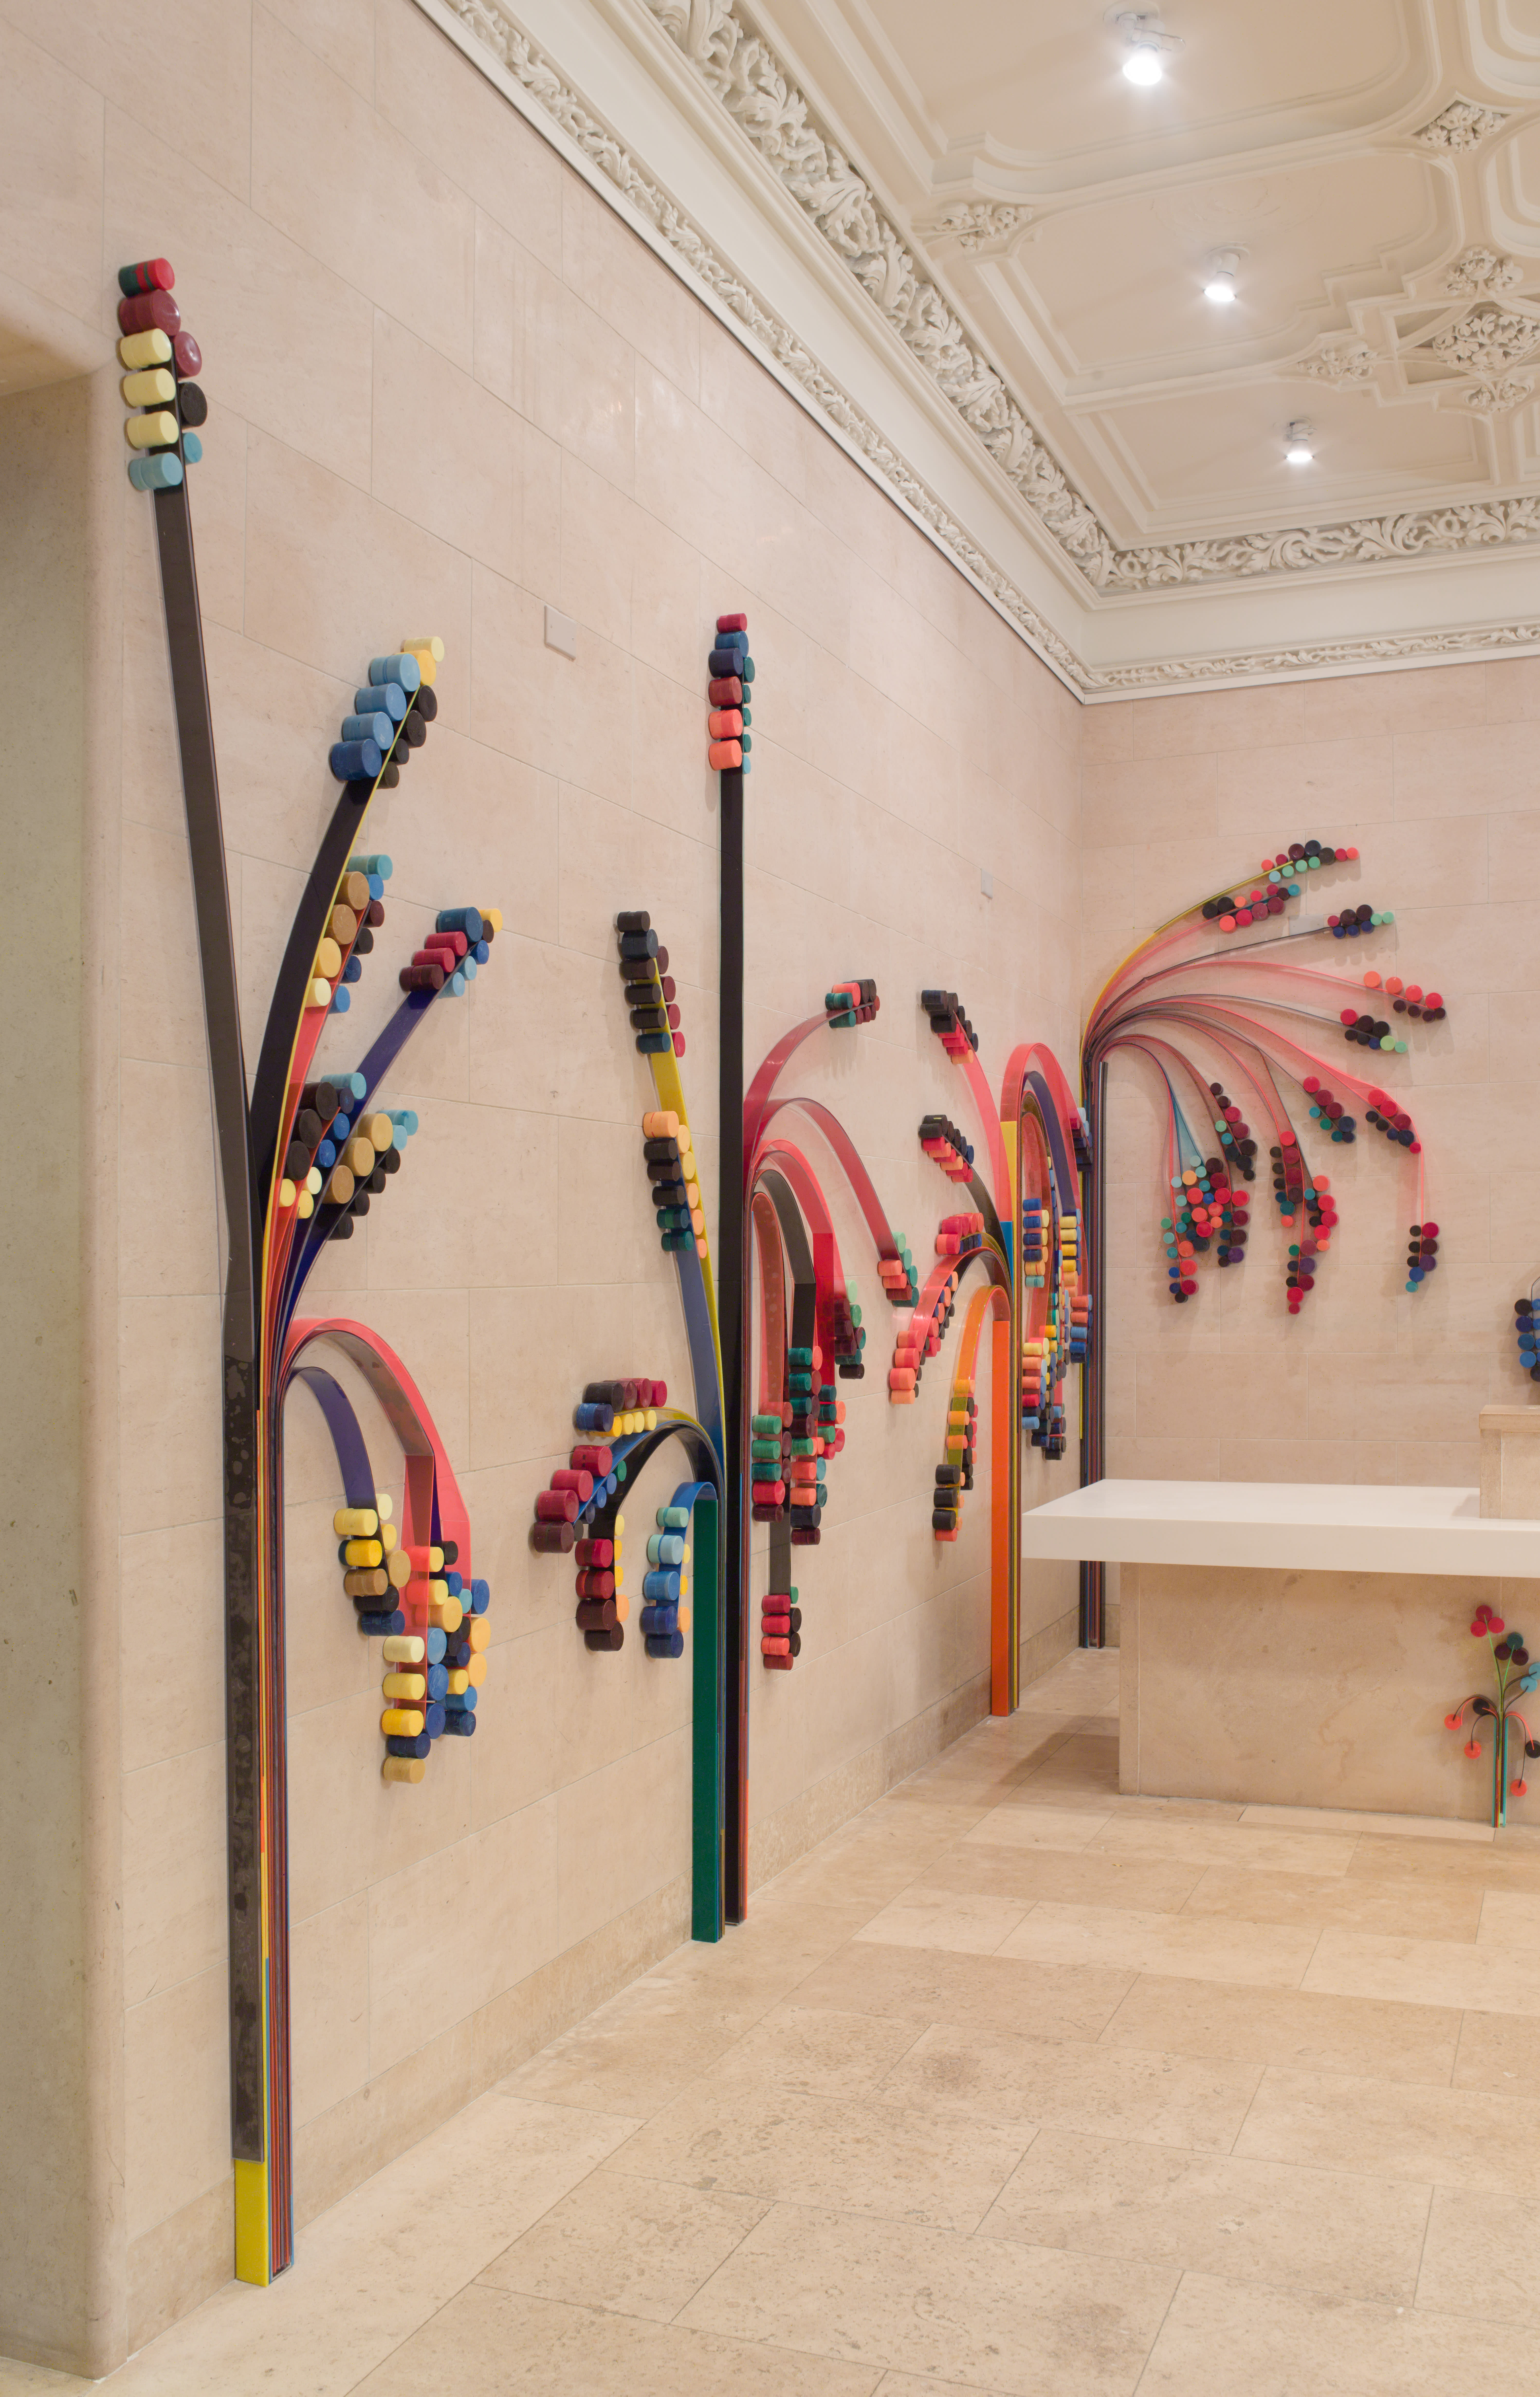 New Work by Sculptor Eva LeWitt On View at the Jewish Museum Beginning November 2